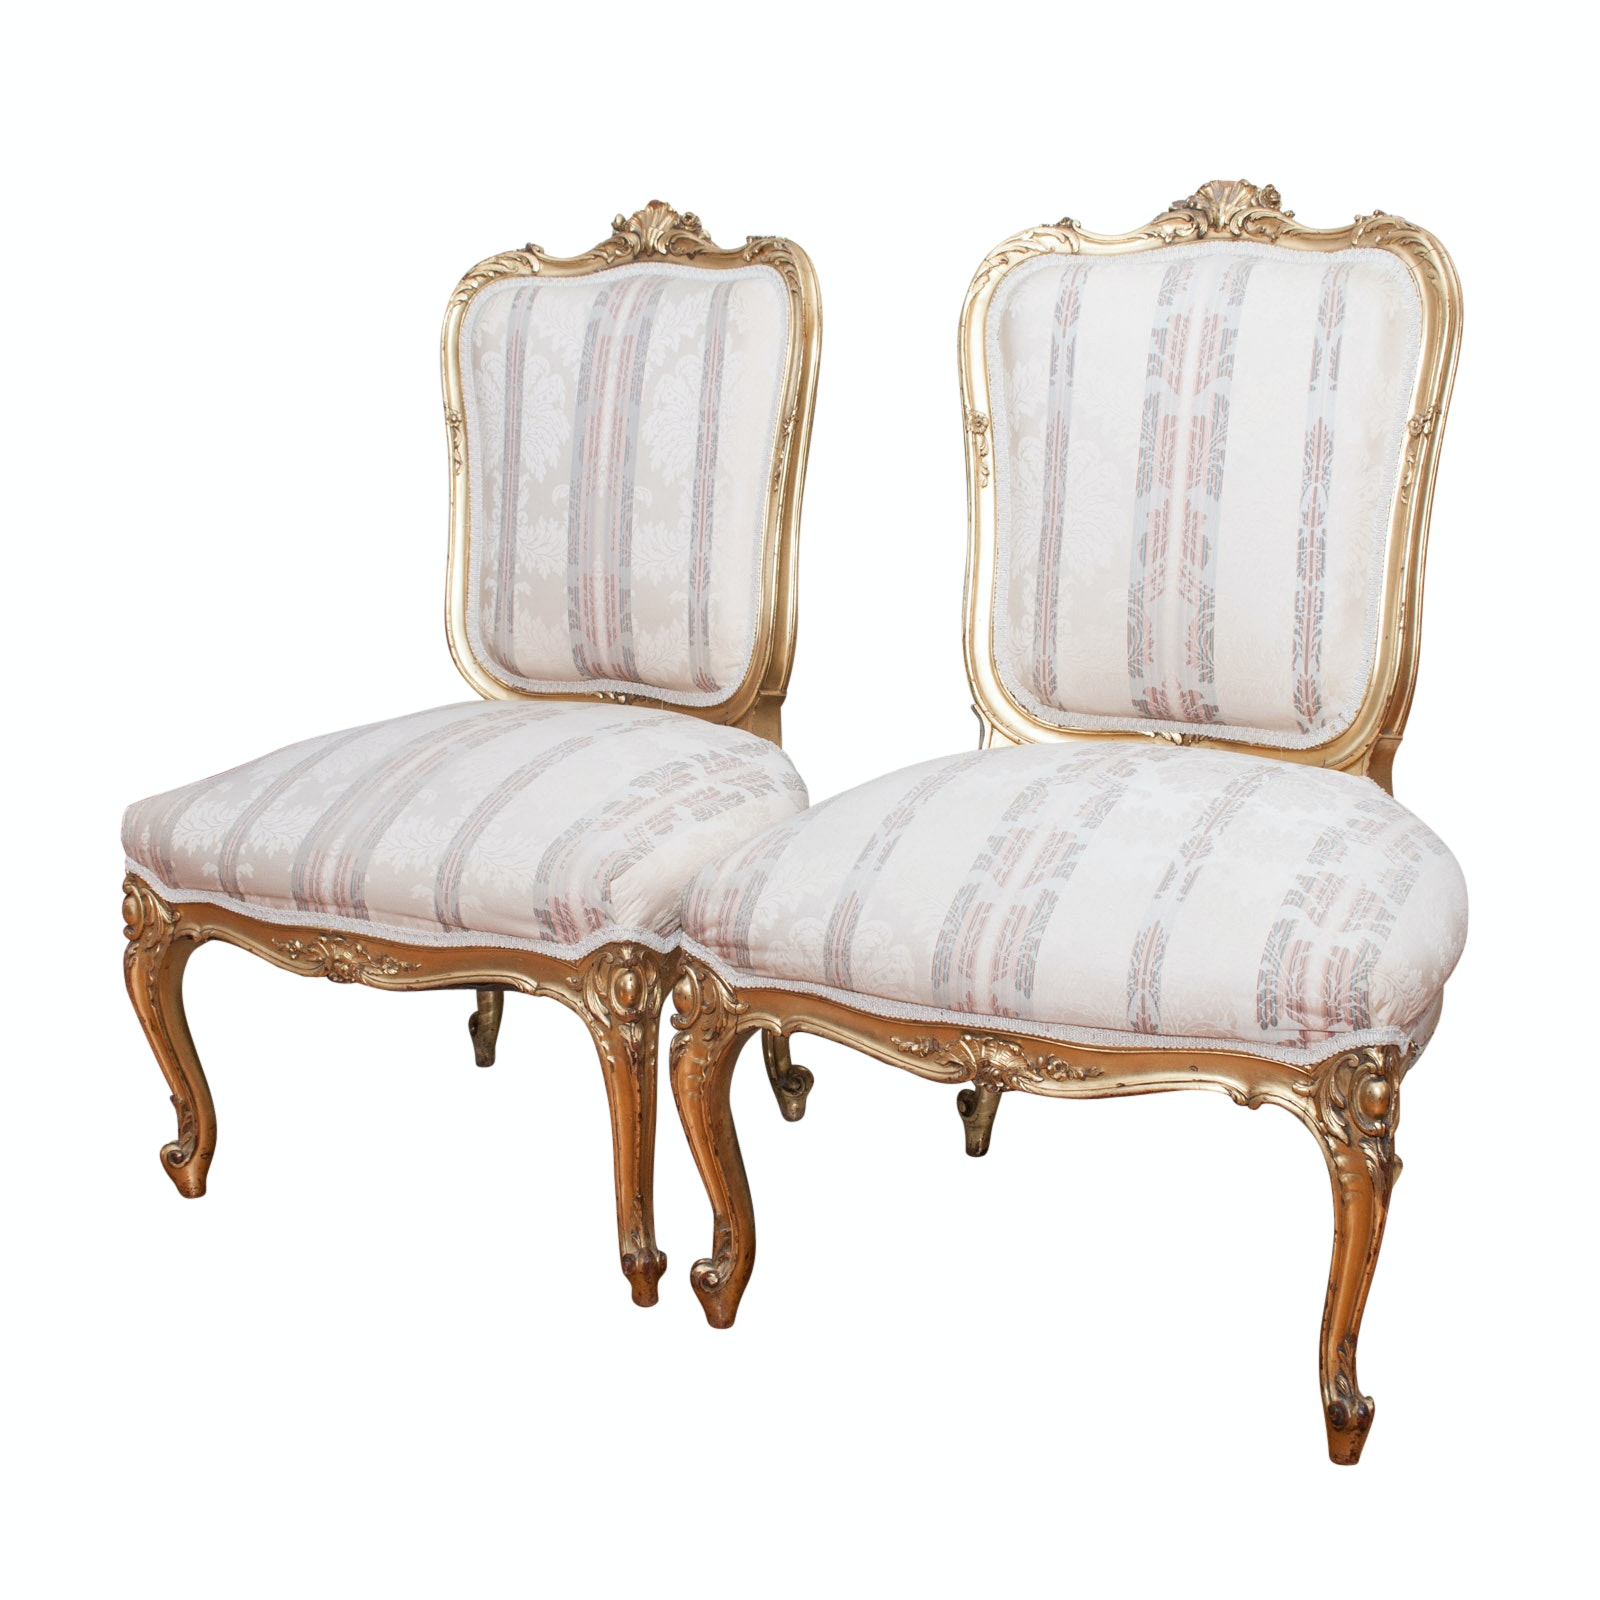 Pair of Antique Louis XV-Style Side Chairs